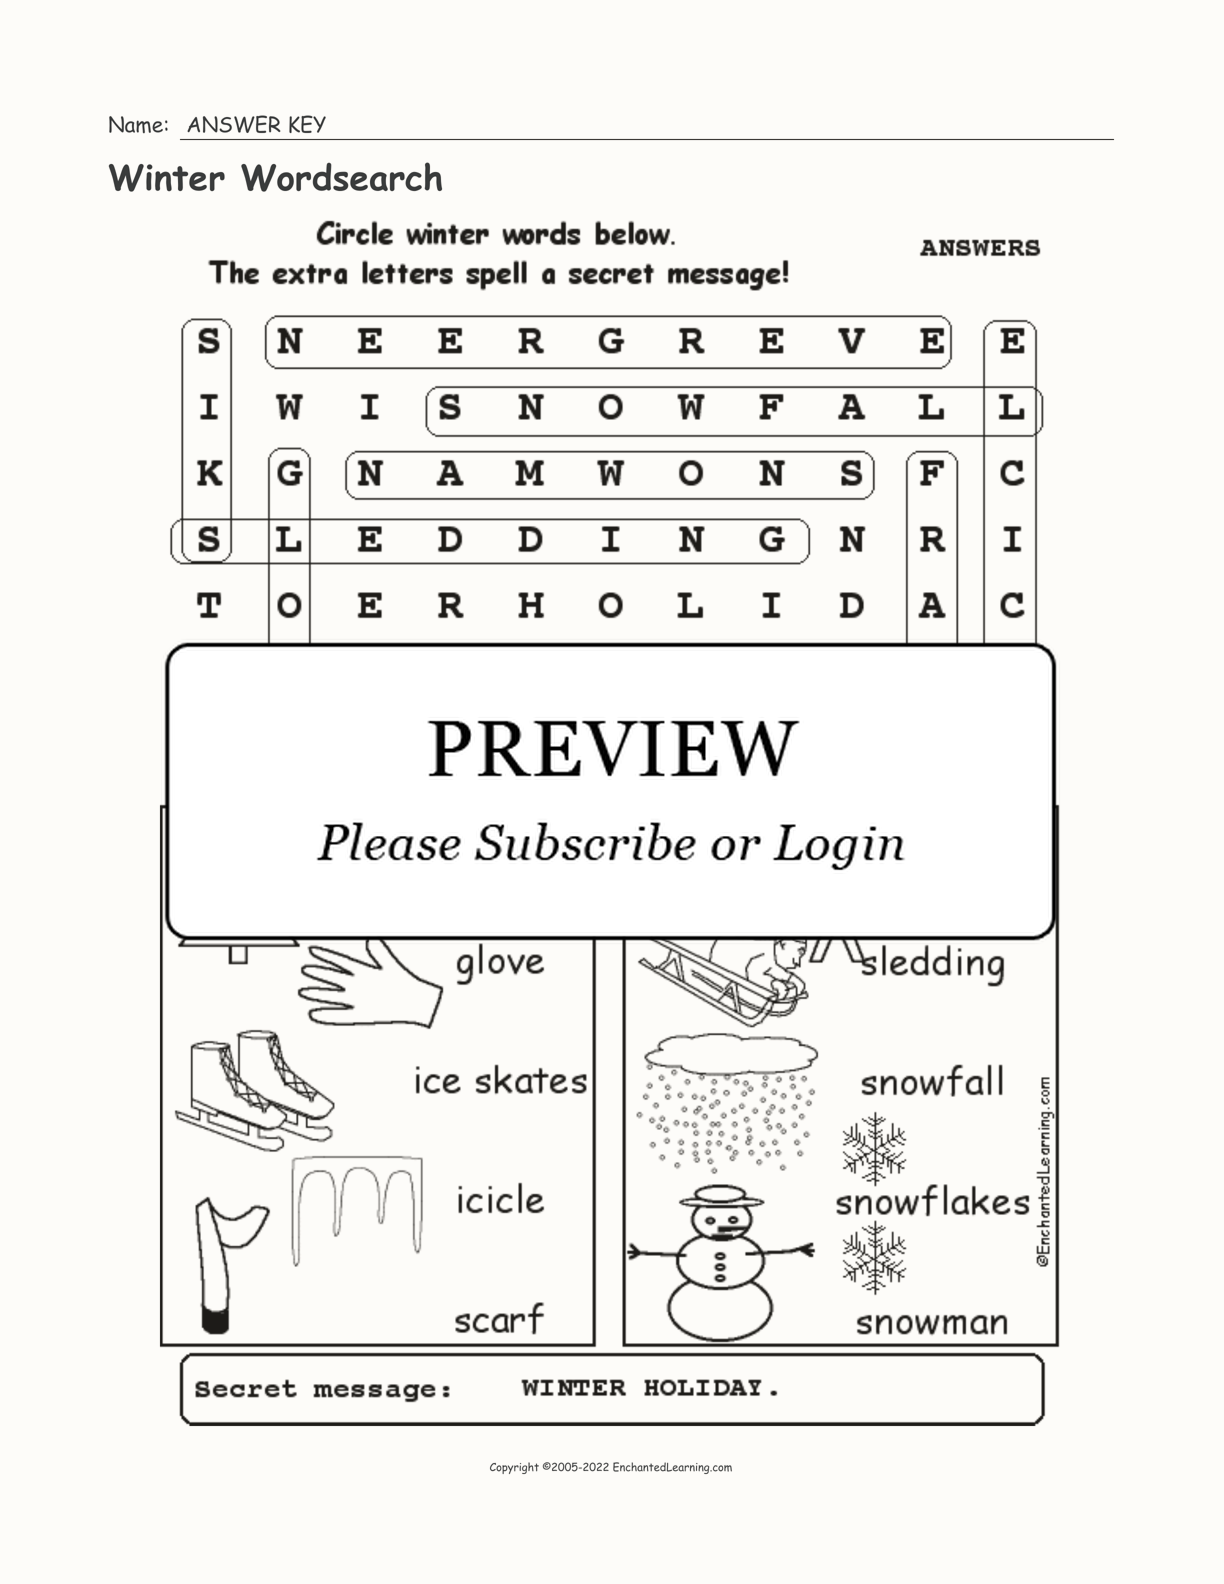 Winter Wordsearch interactive worksheet page 2